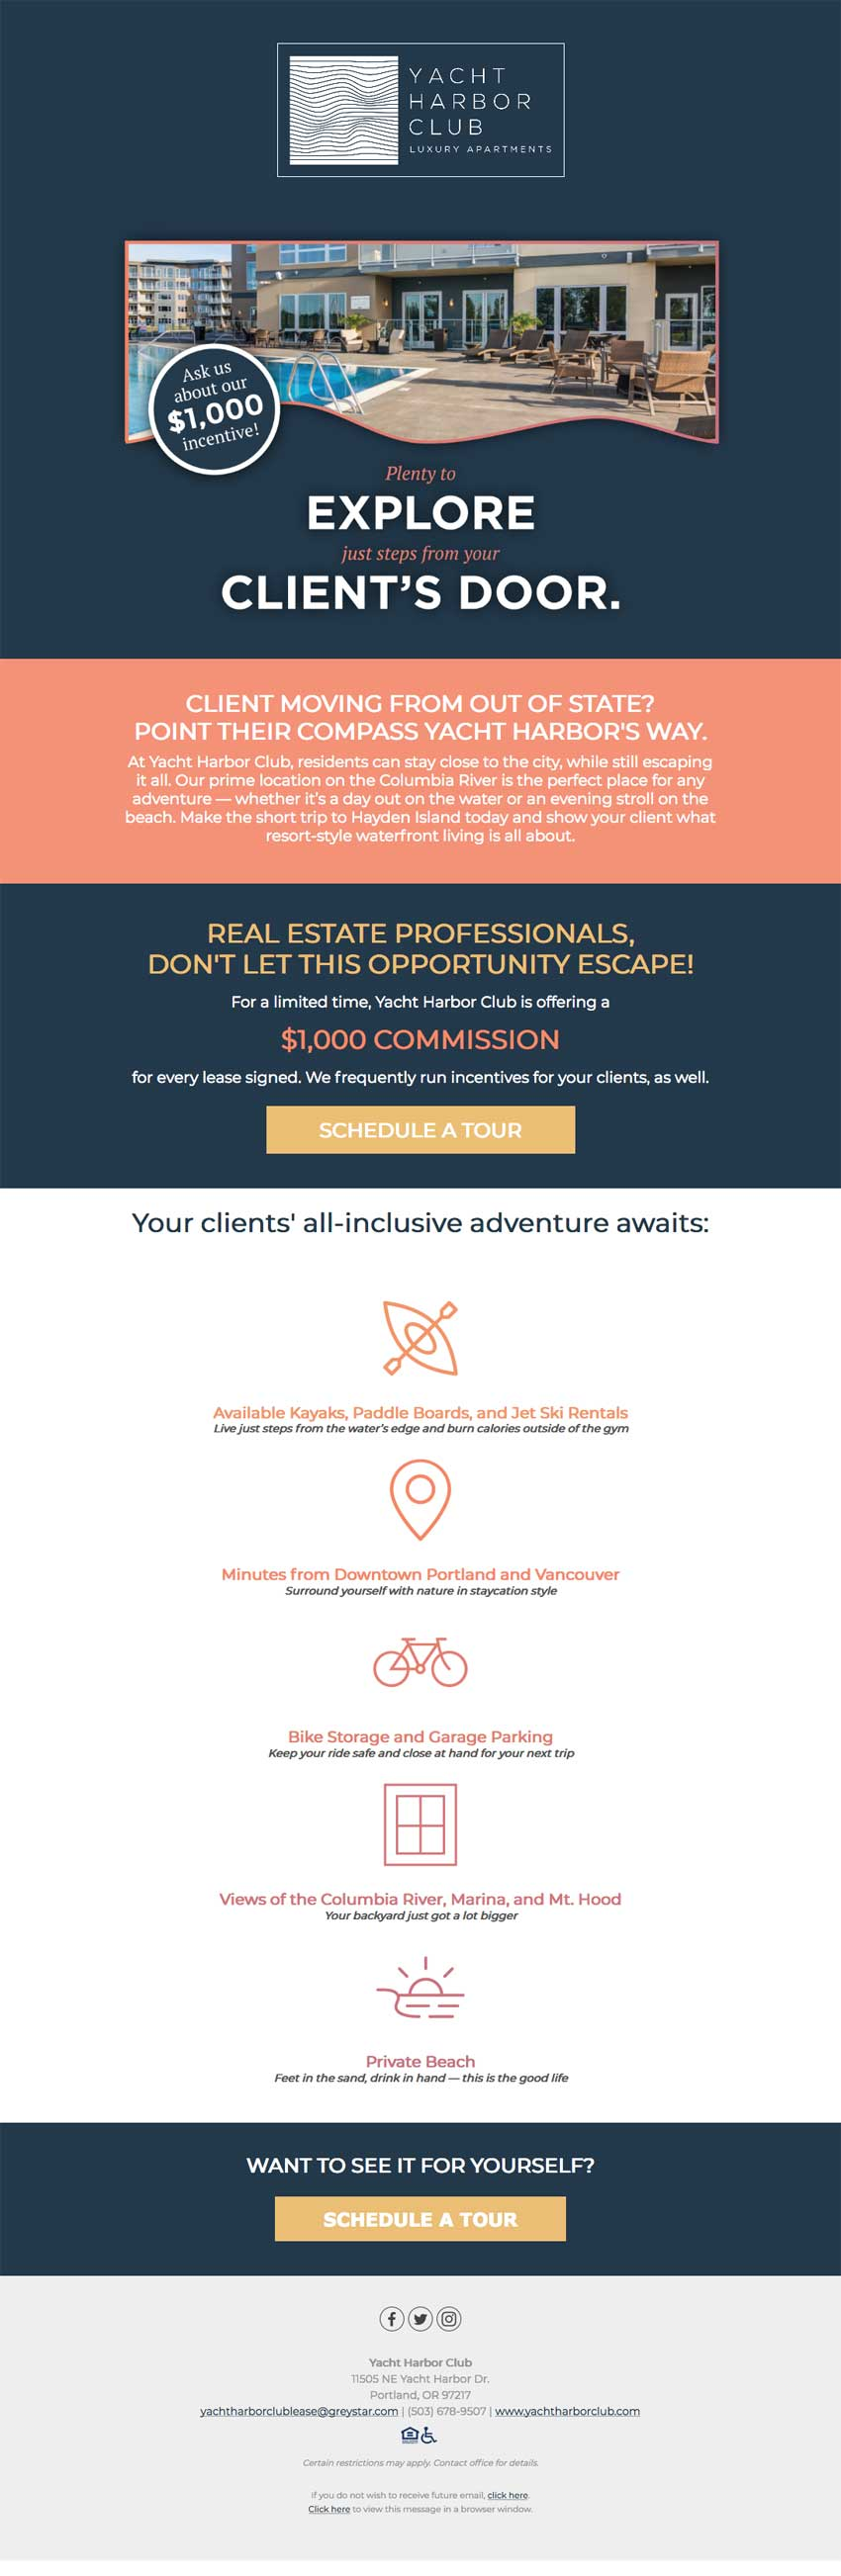 Campus Advantage Realtor campaign for Yacht Harbor email #2